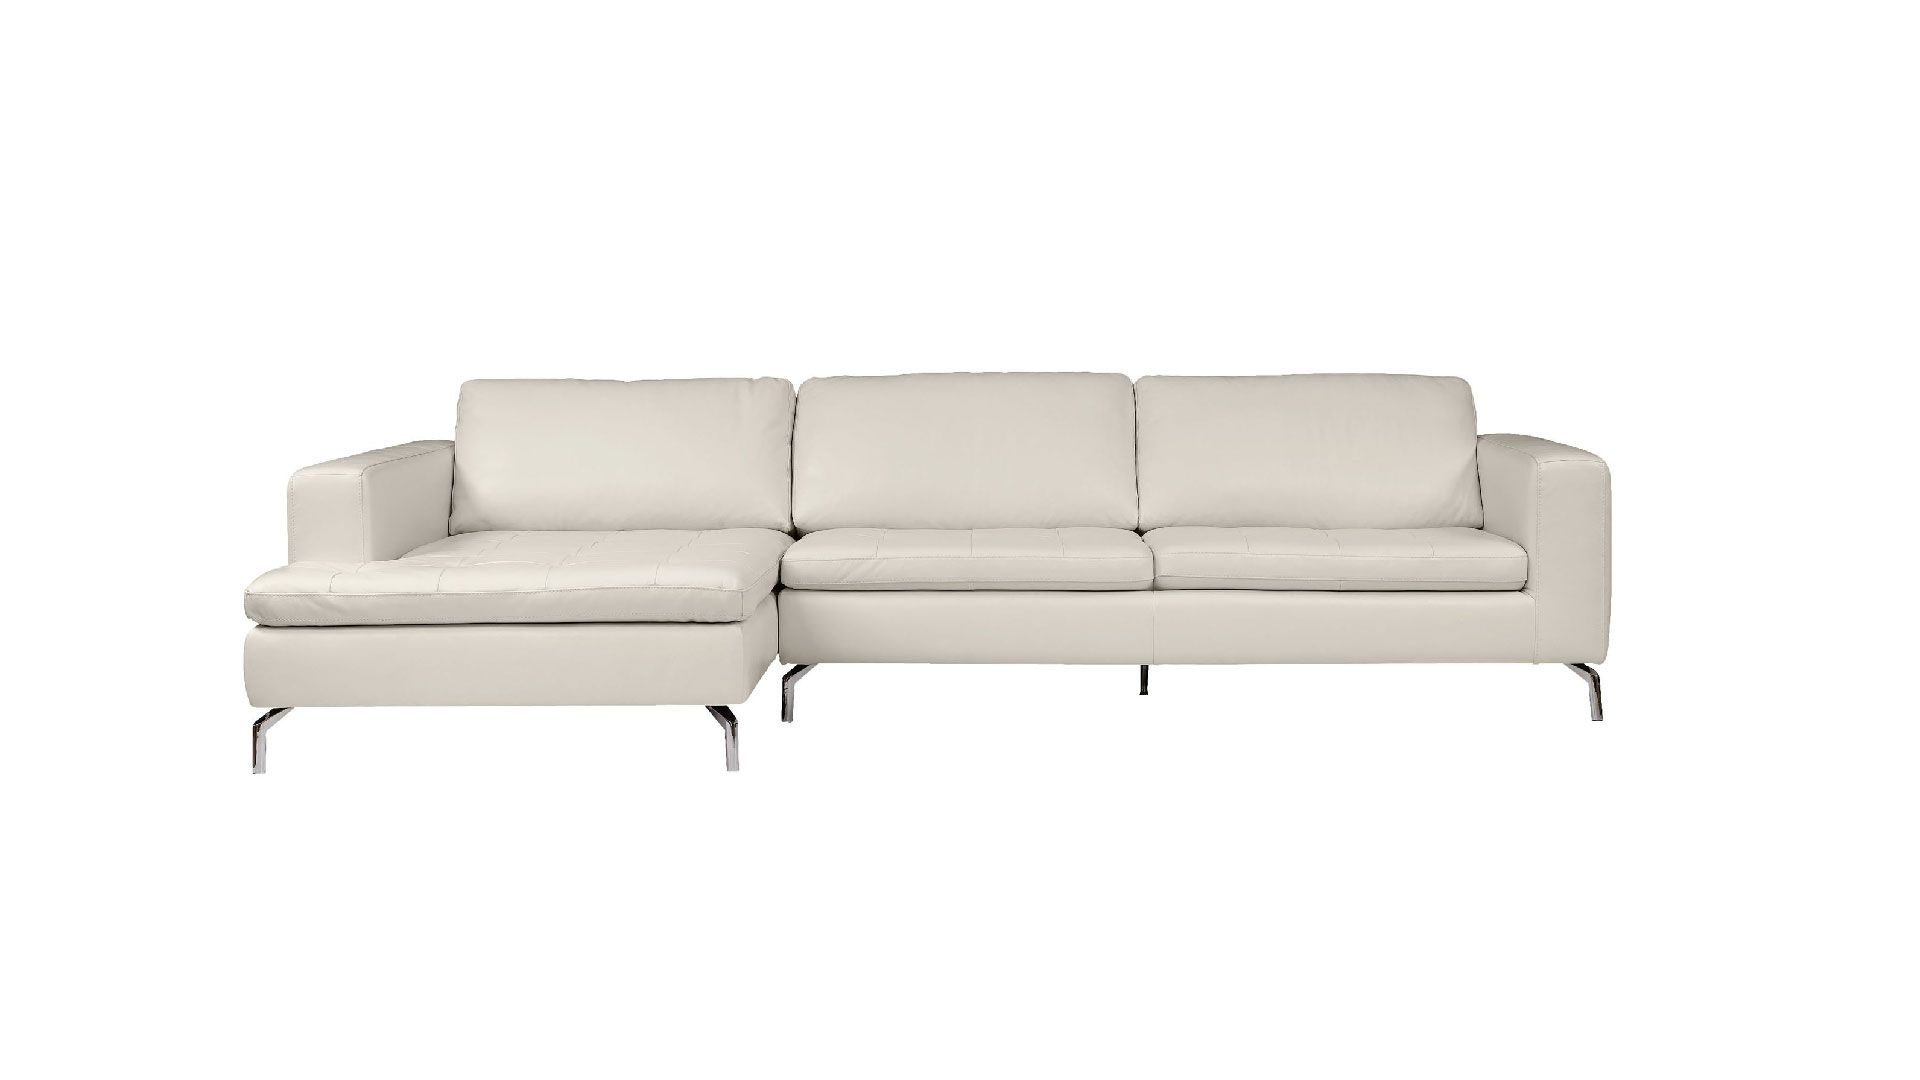 Meubles Modernes Italiens Savoy By Natuzzi Italia Sofa And Sectionals Modern